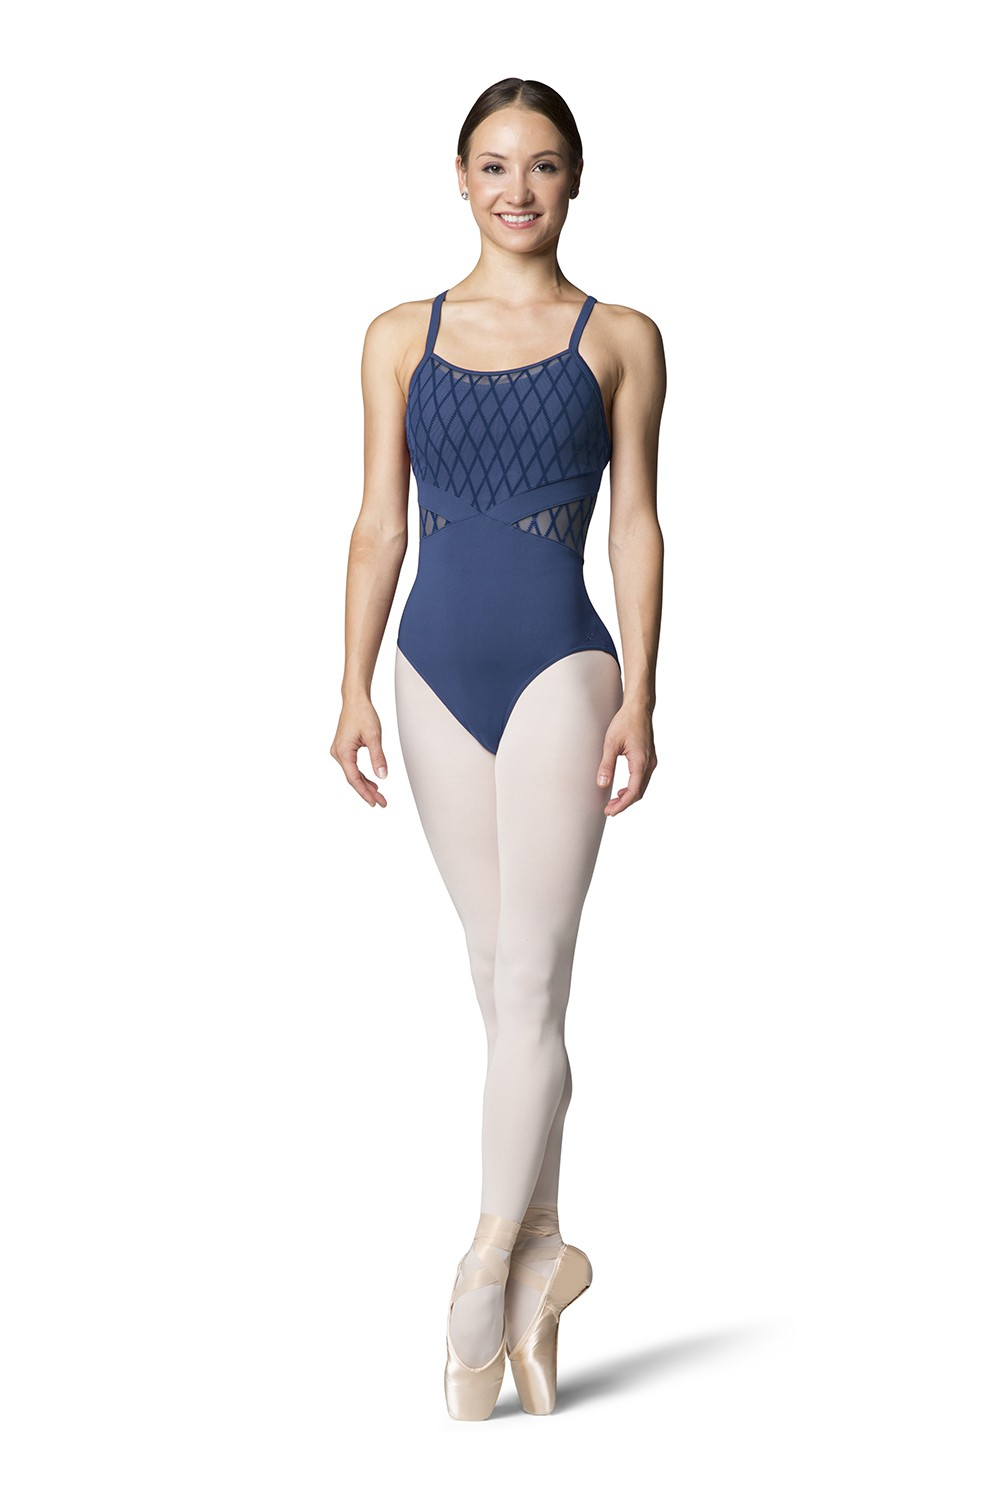 Adelita Women's Dance Leotards